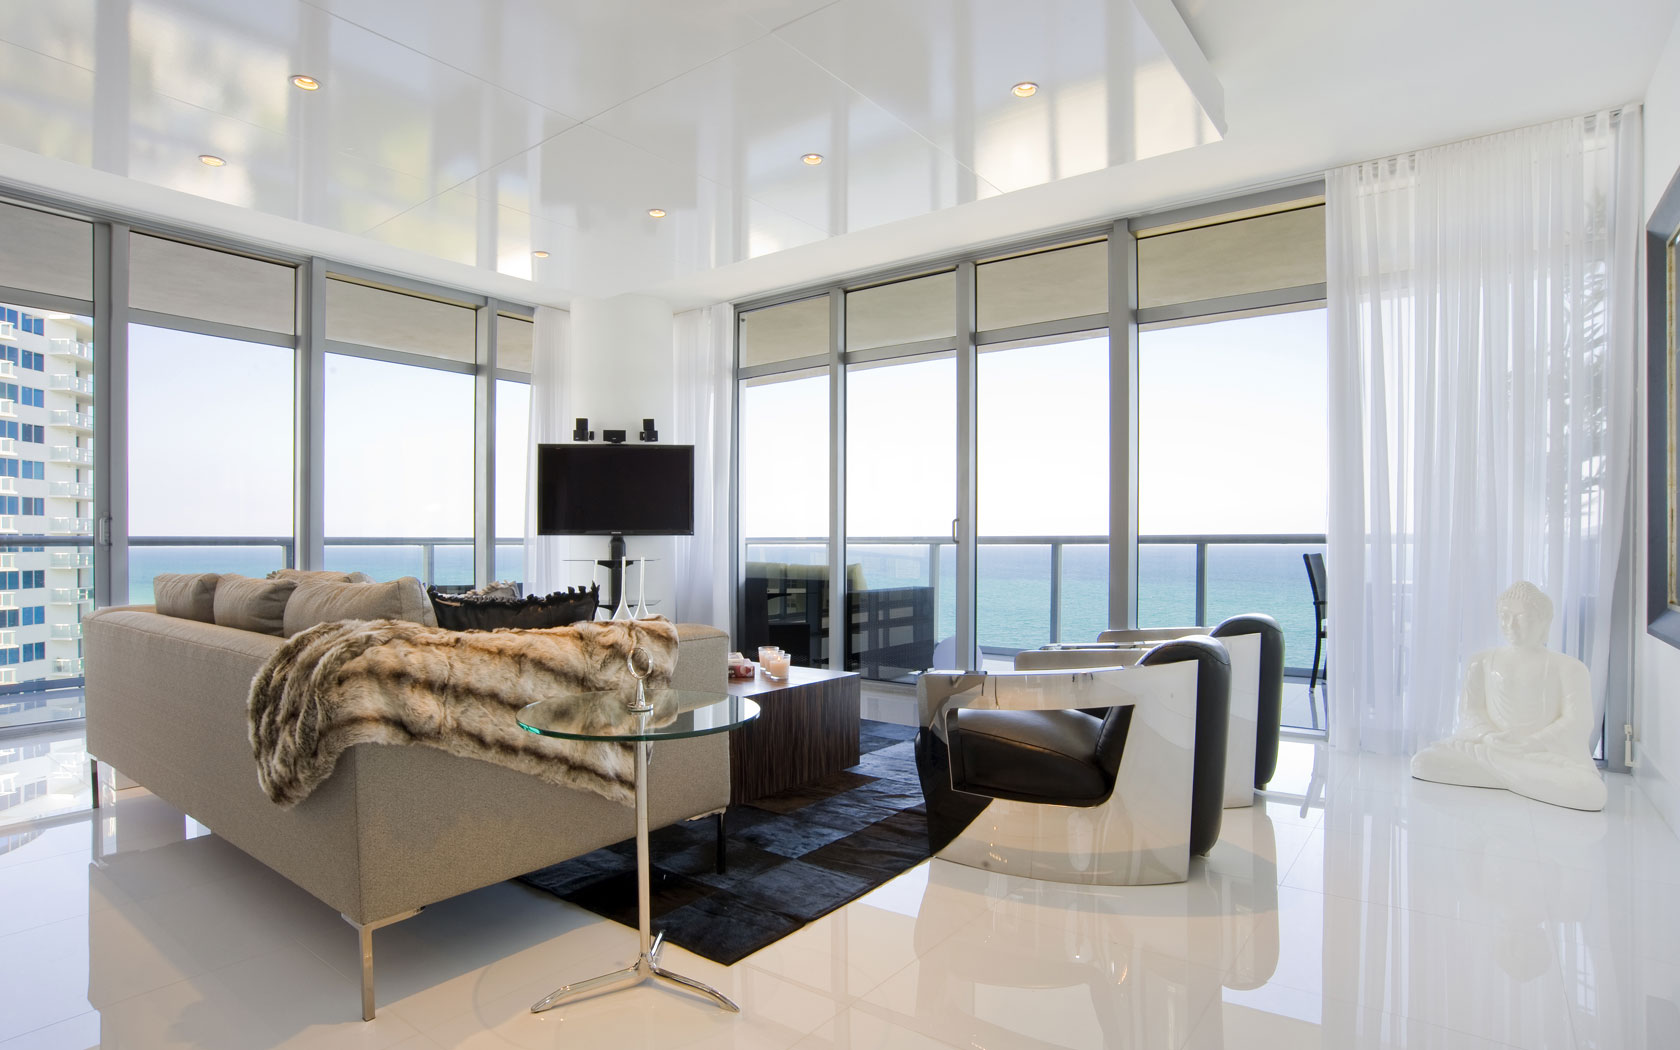 Beach condo interior design ideas joy studio design for Condominium decoration